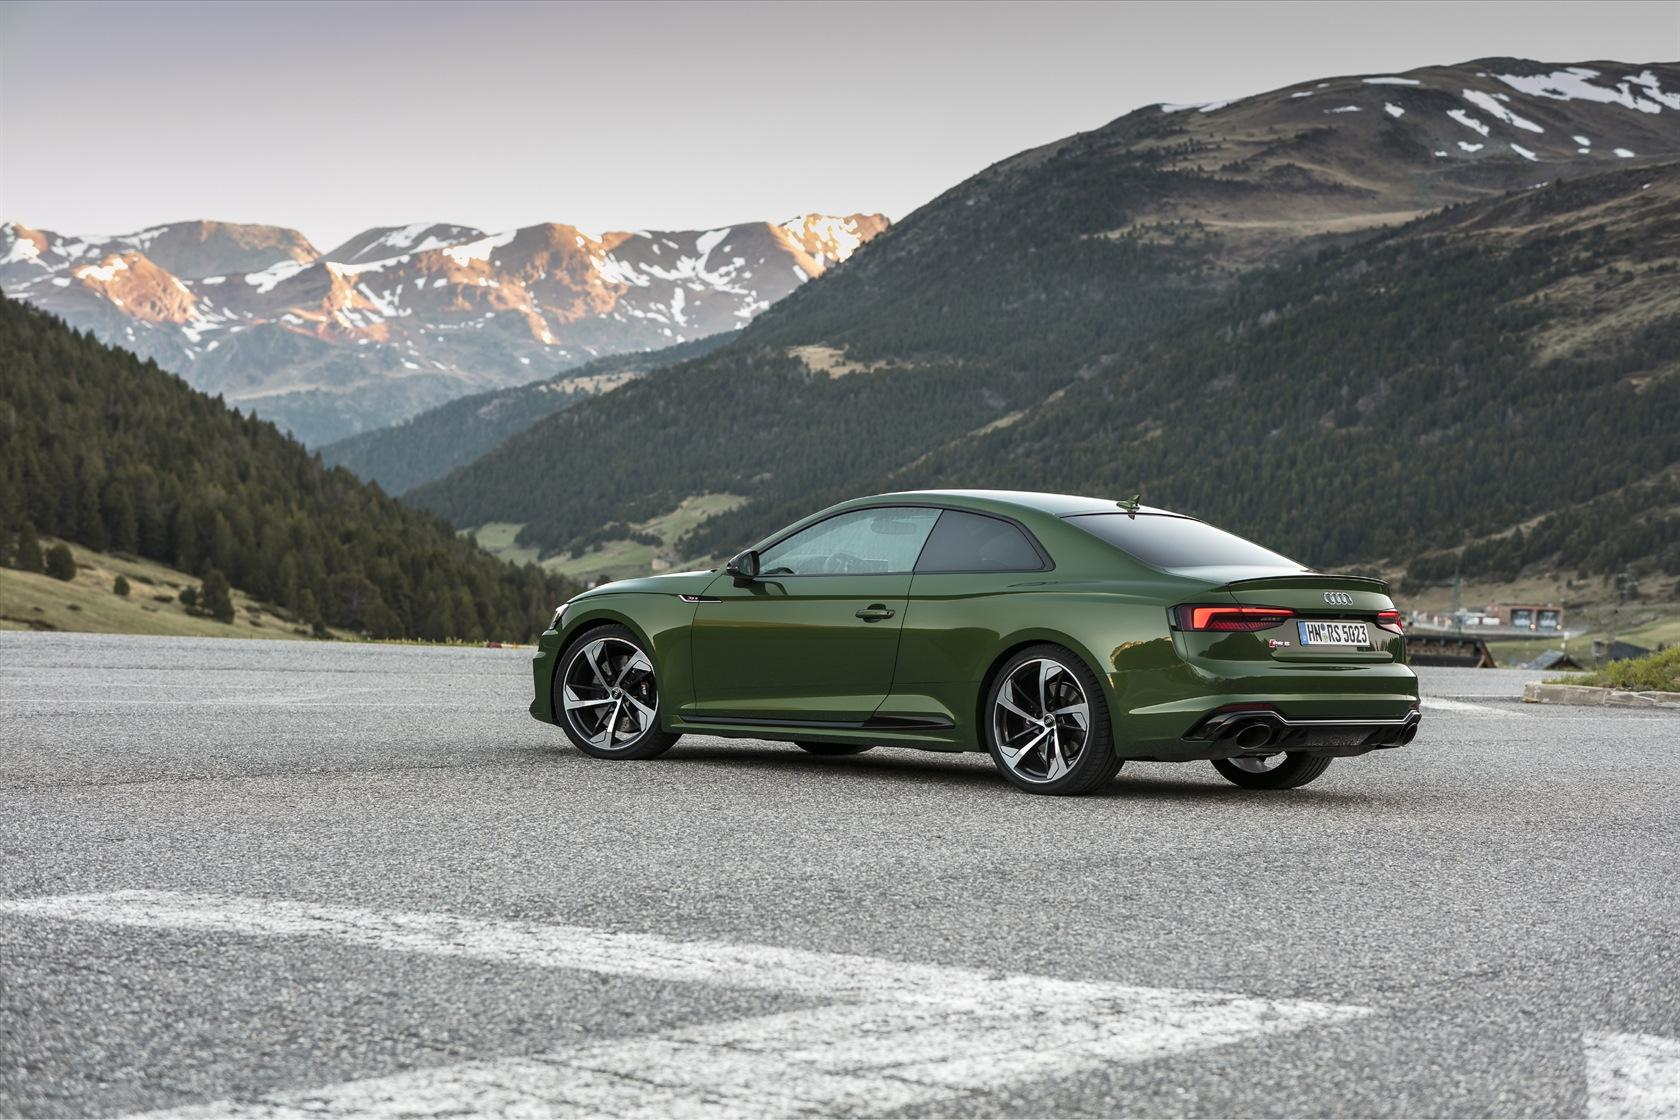 2018 Audi Sport RS 5 Coupe First-Drive Review: A go-anywhere